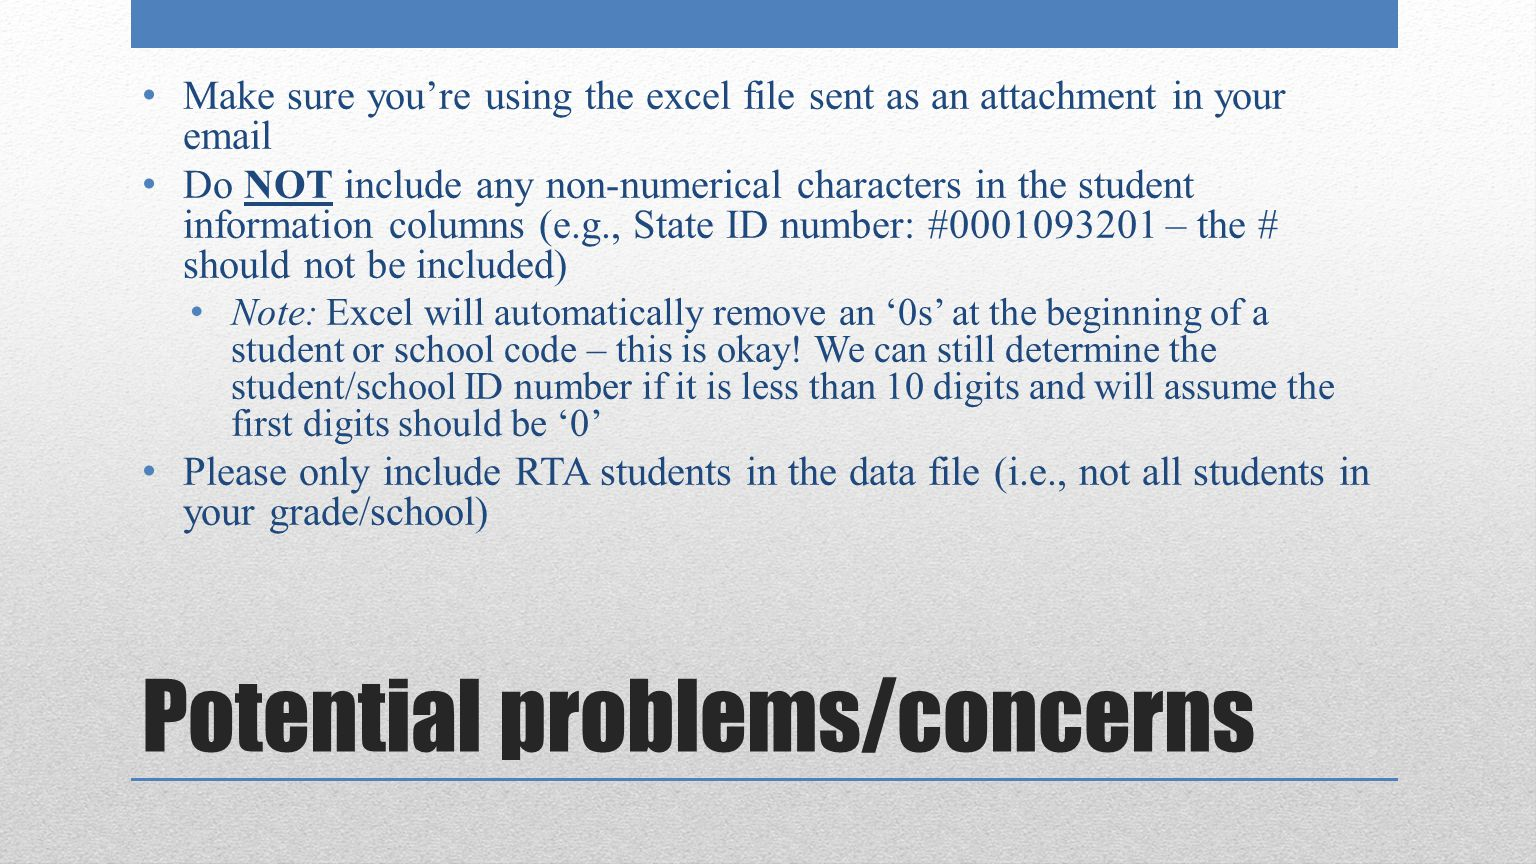 Potential problems/concerns Make sure you're using the excel file sent as an attachment in your email Do NOT include any non-numerical characters in the student information columns (e.g., State ID number: #0001093201 – the # should not be included) Note: Excel will automatically remove an '0s' at the beginning of a student or school code – this is okay.